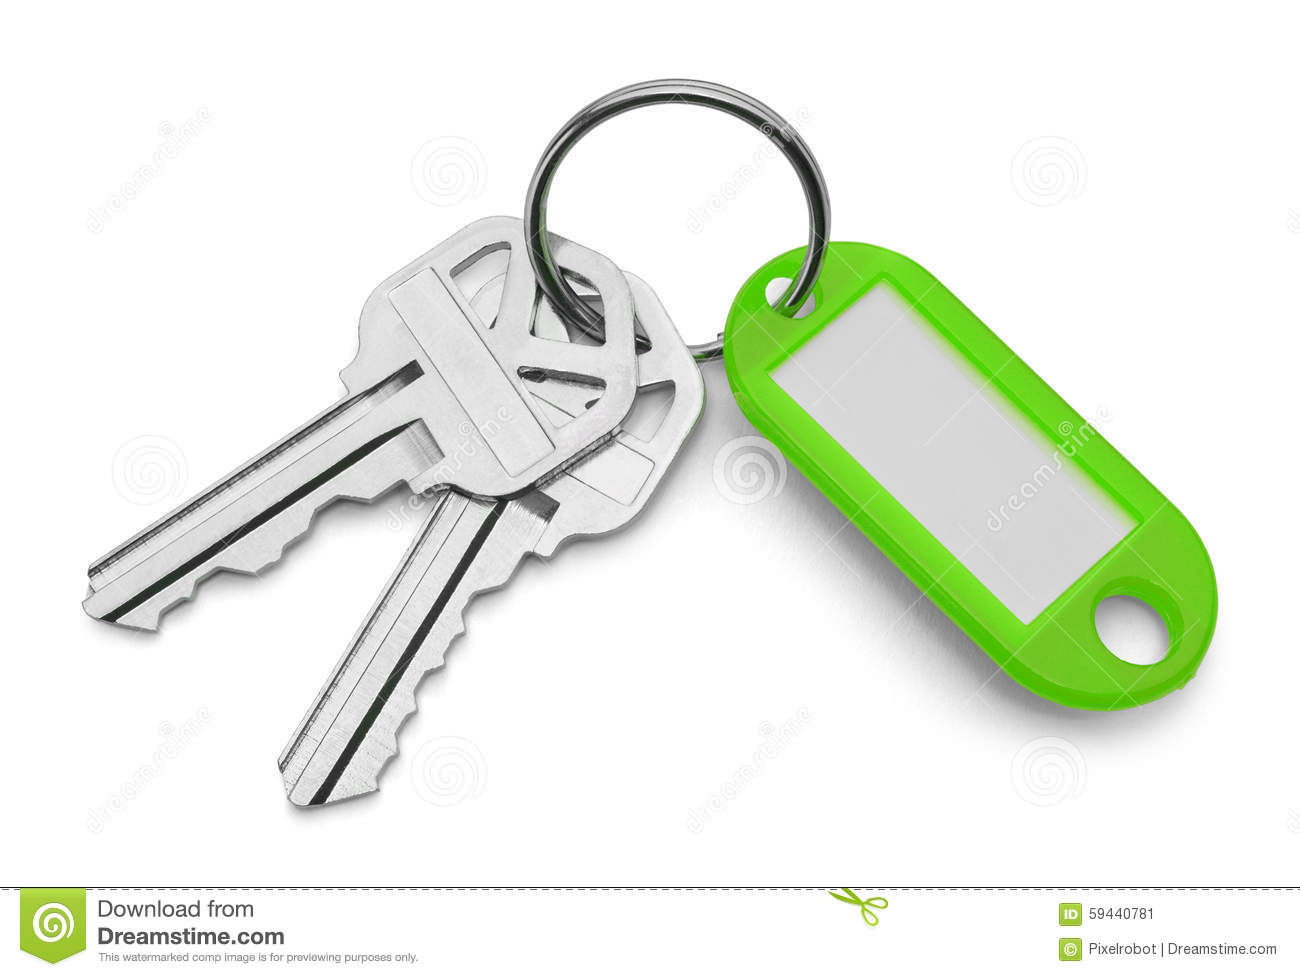 Keys and Green Key Chain Keys